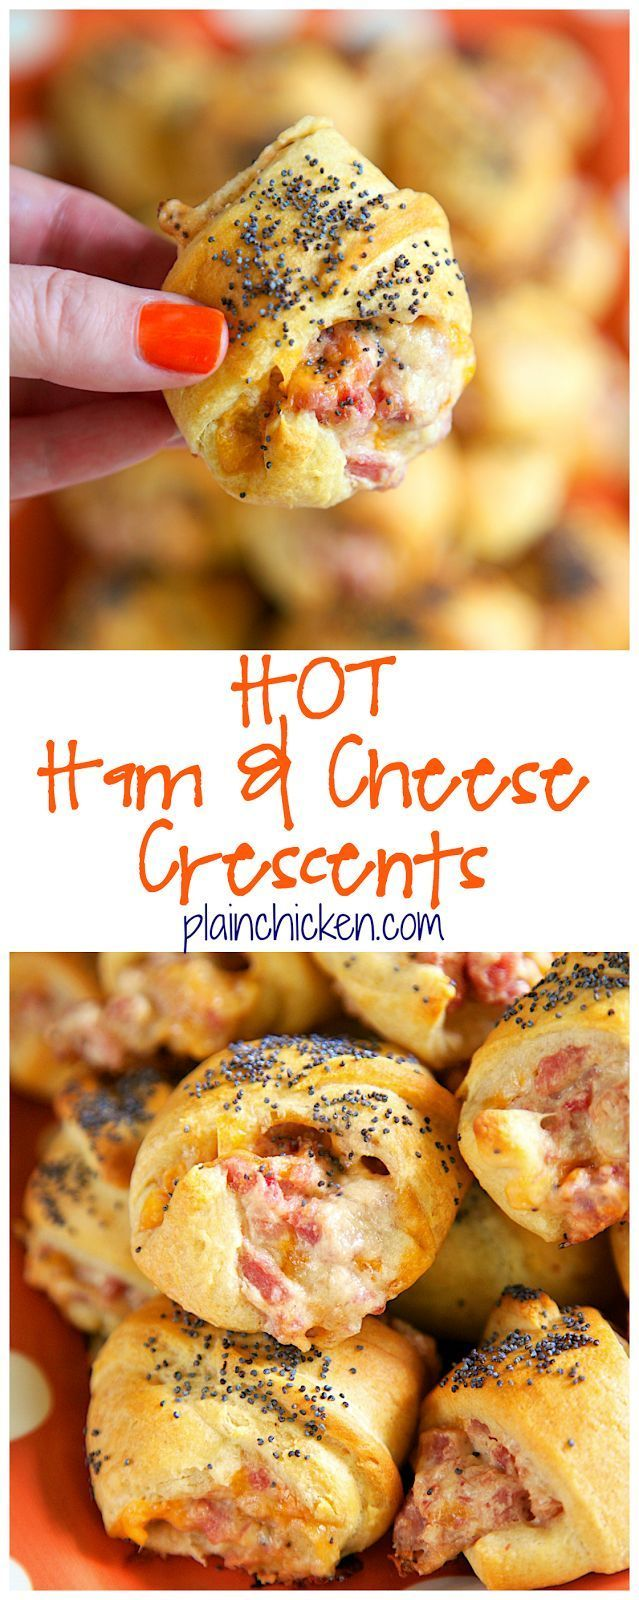 Hot Ham and Cheese Crescents recipe - ham, cheddar, swiss, cream cheese, dijon mustard, Worcestershire, brown sugar mixed together and baked in crescent rolls and topped with poppy seeds.